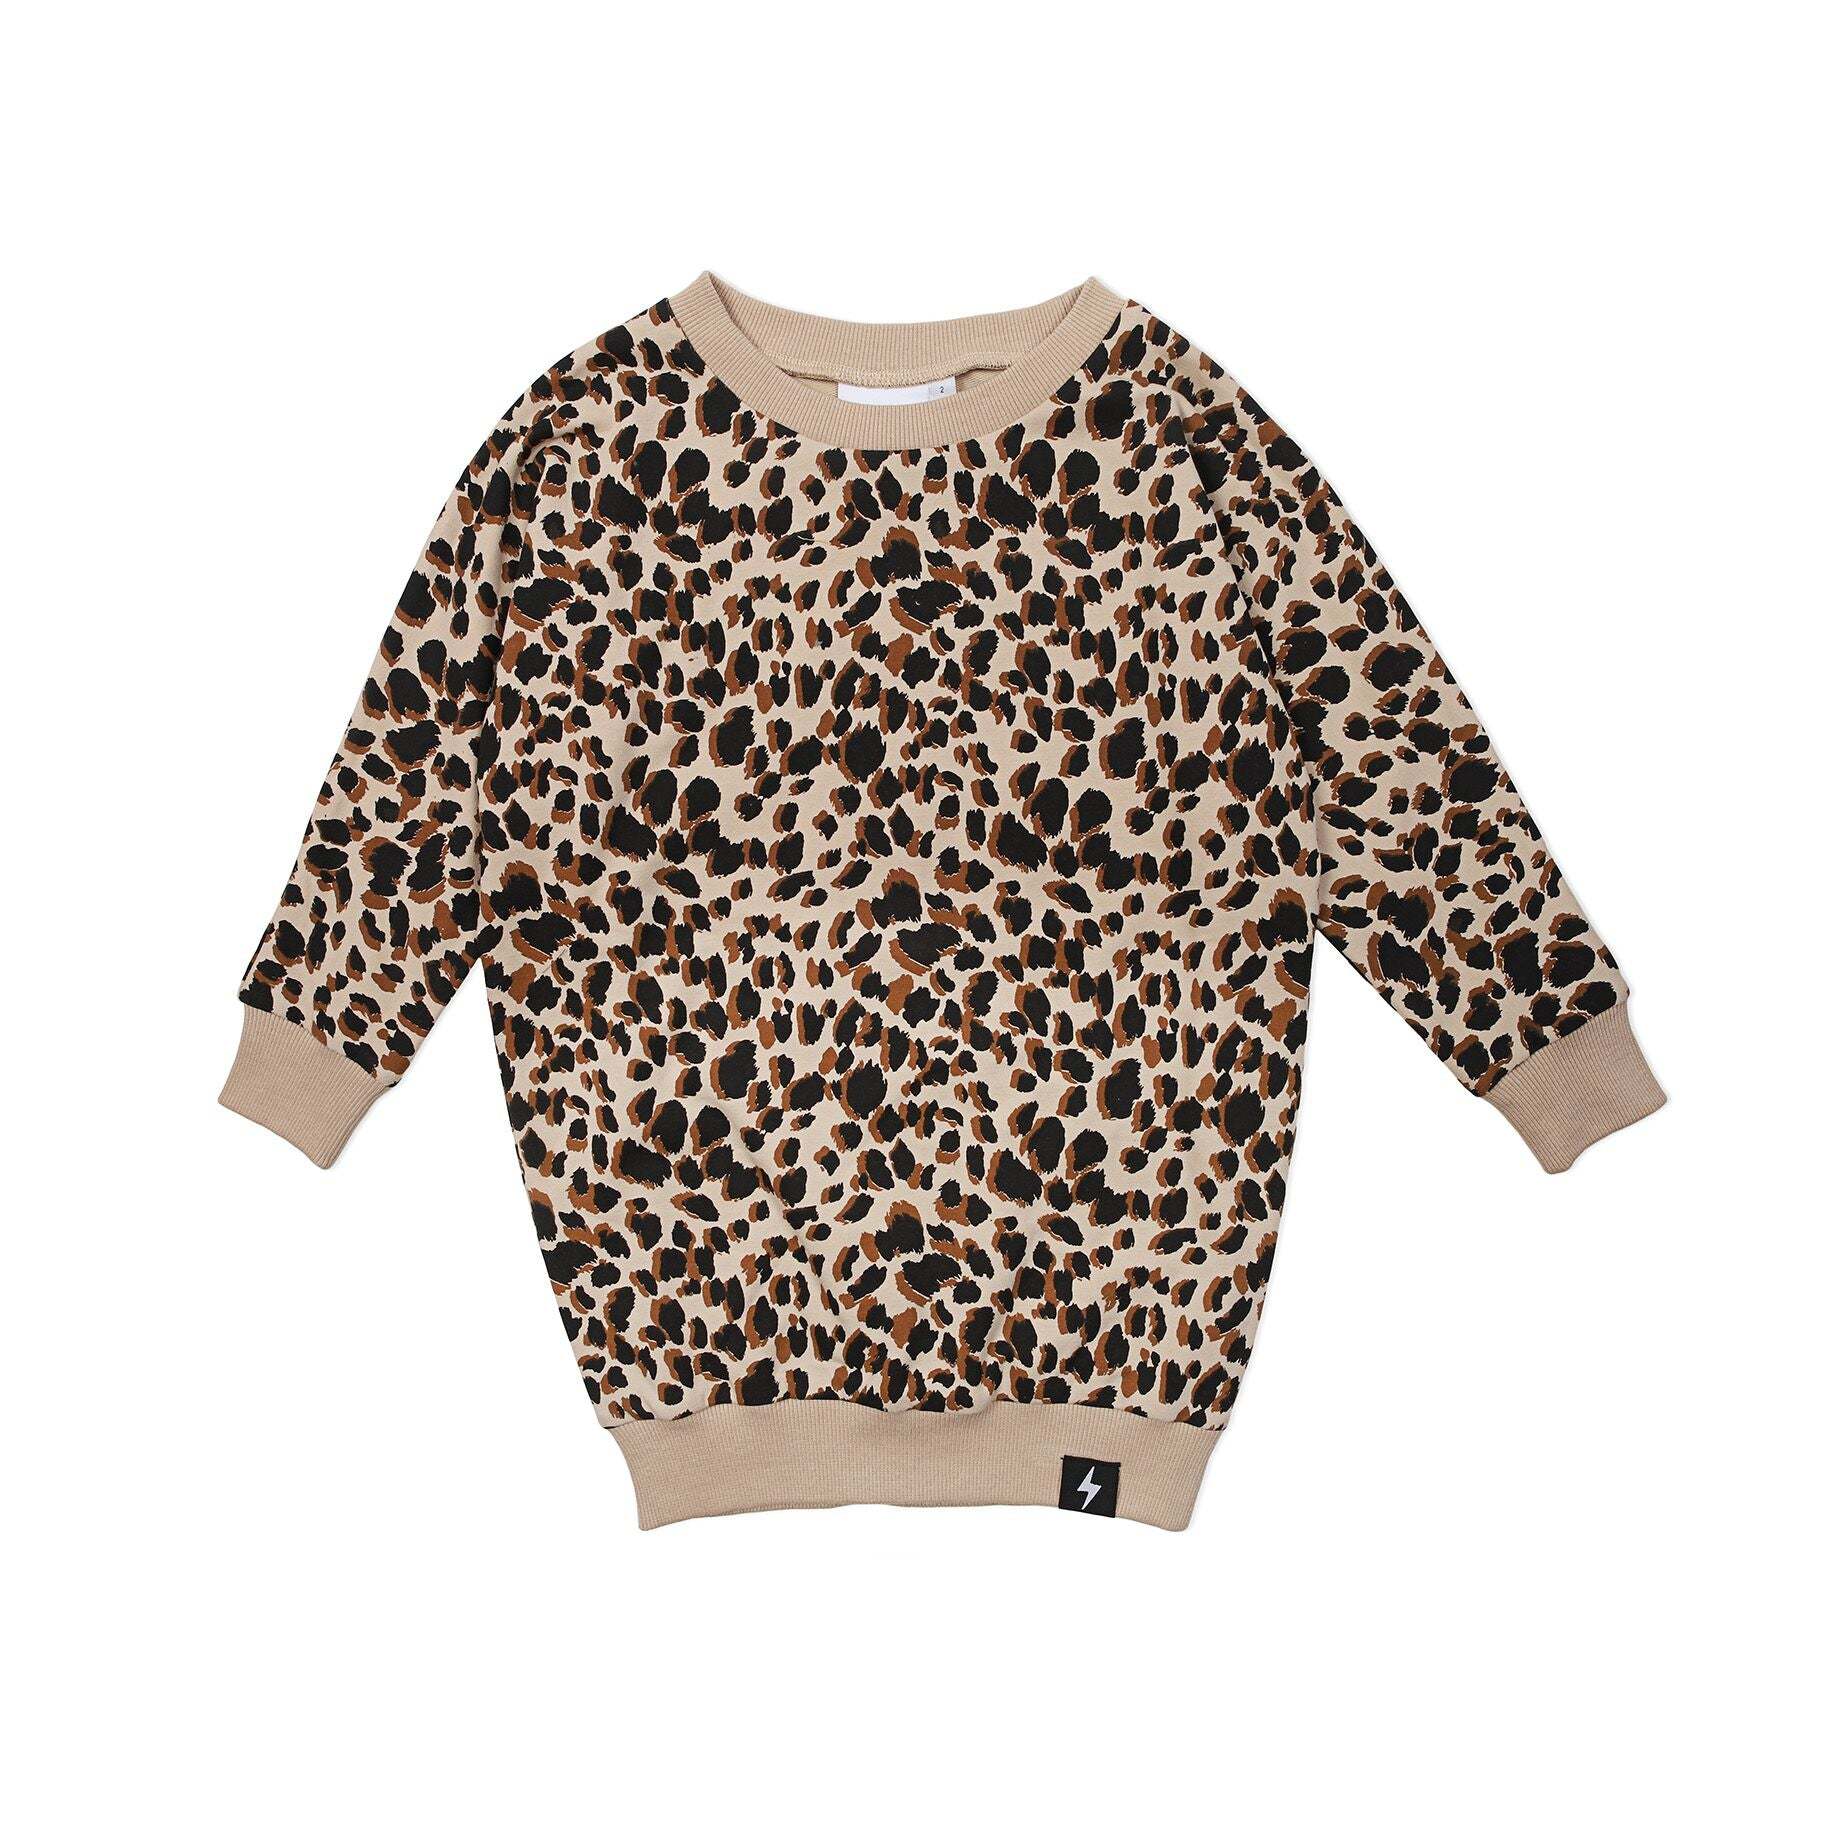 Kapow Leopard Print Sweater Dress